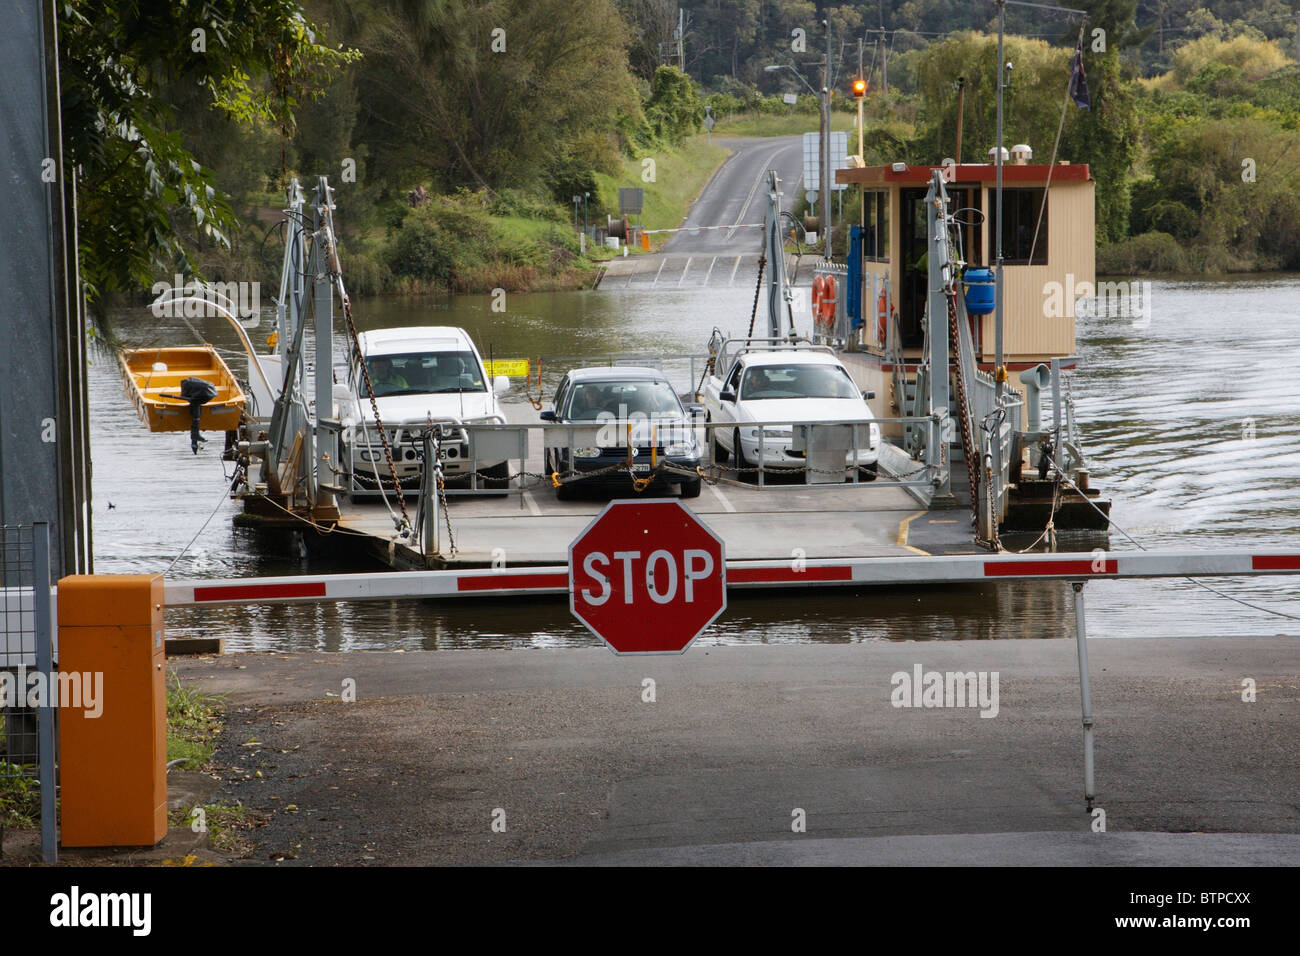 Australia, New South Wales, Hawkesbury, Sackville, Ferry with stop sign - Stock Image